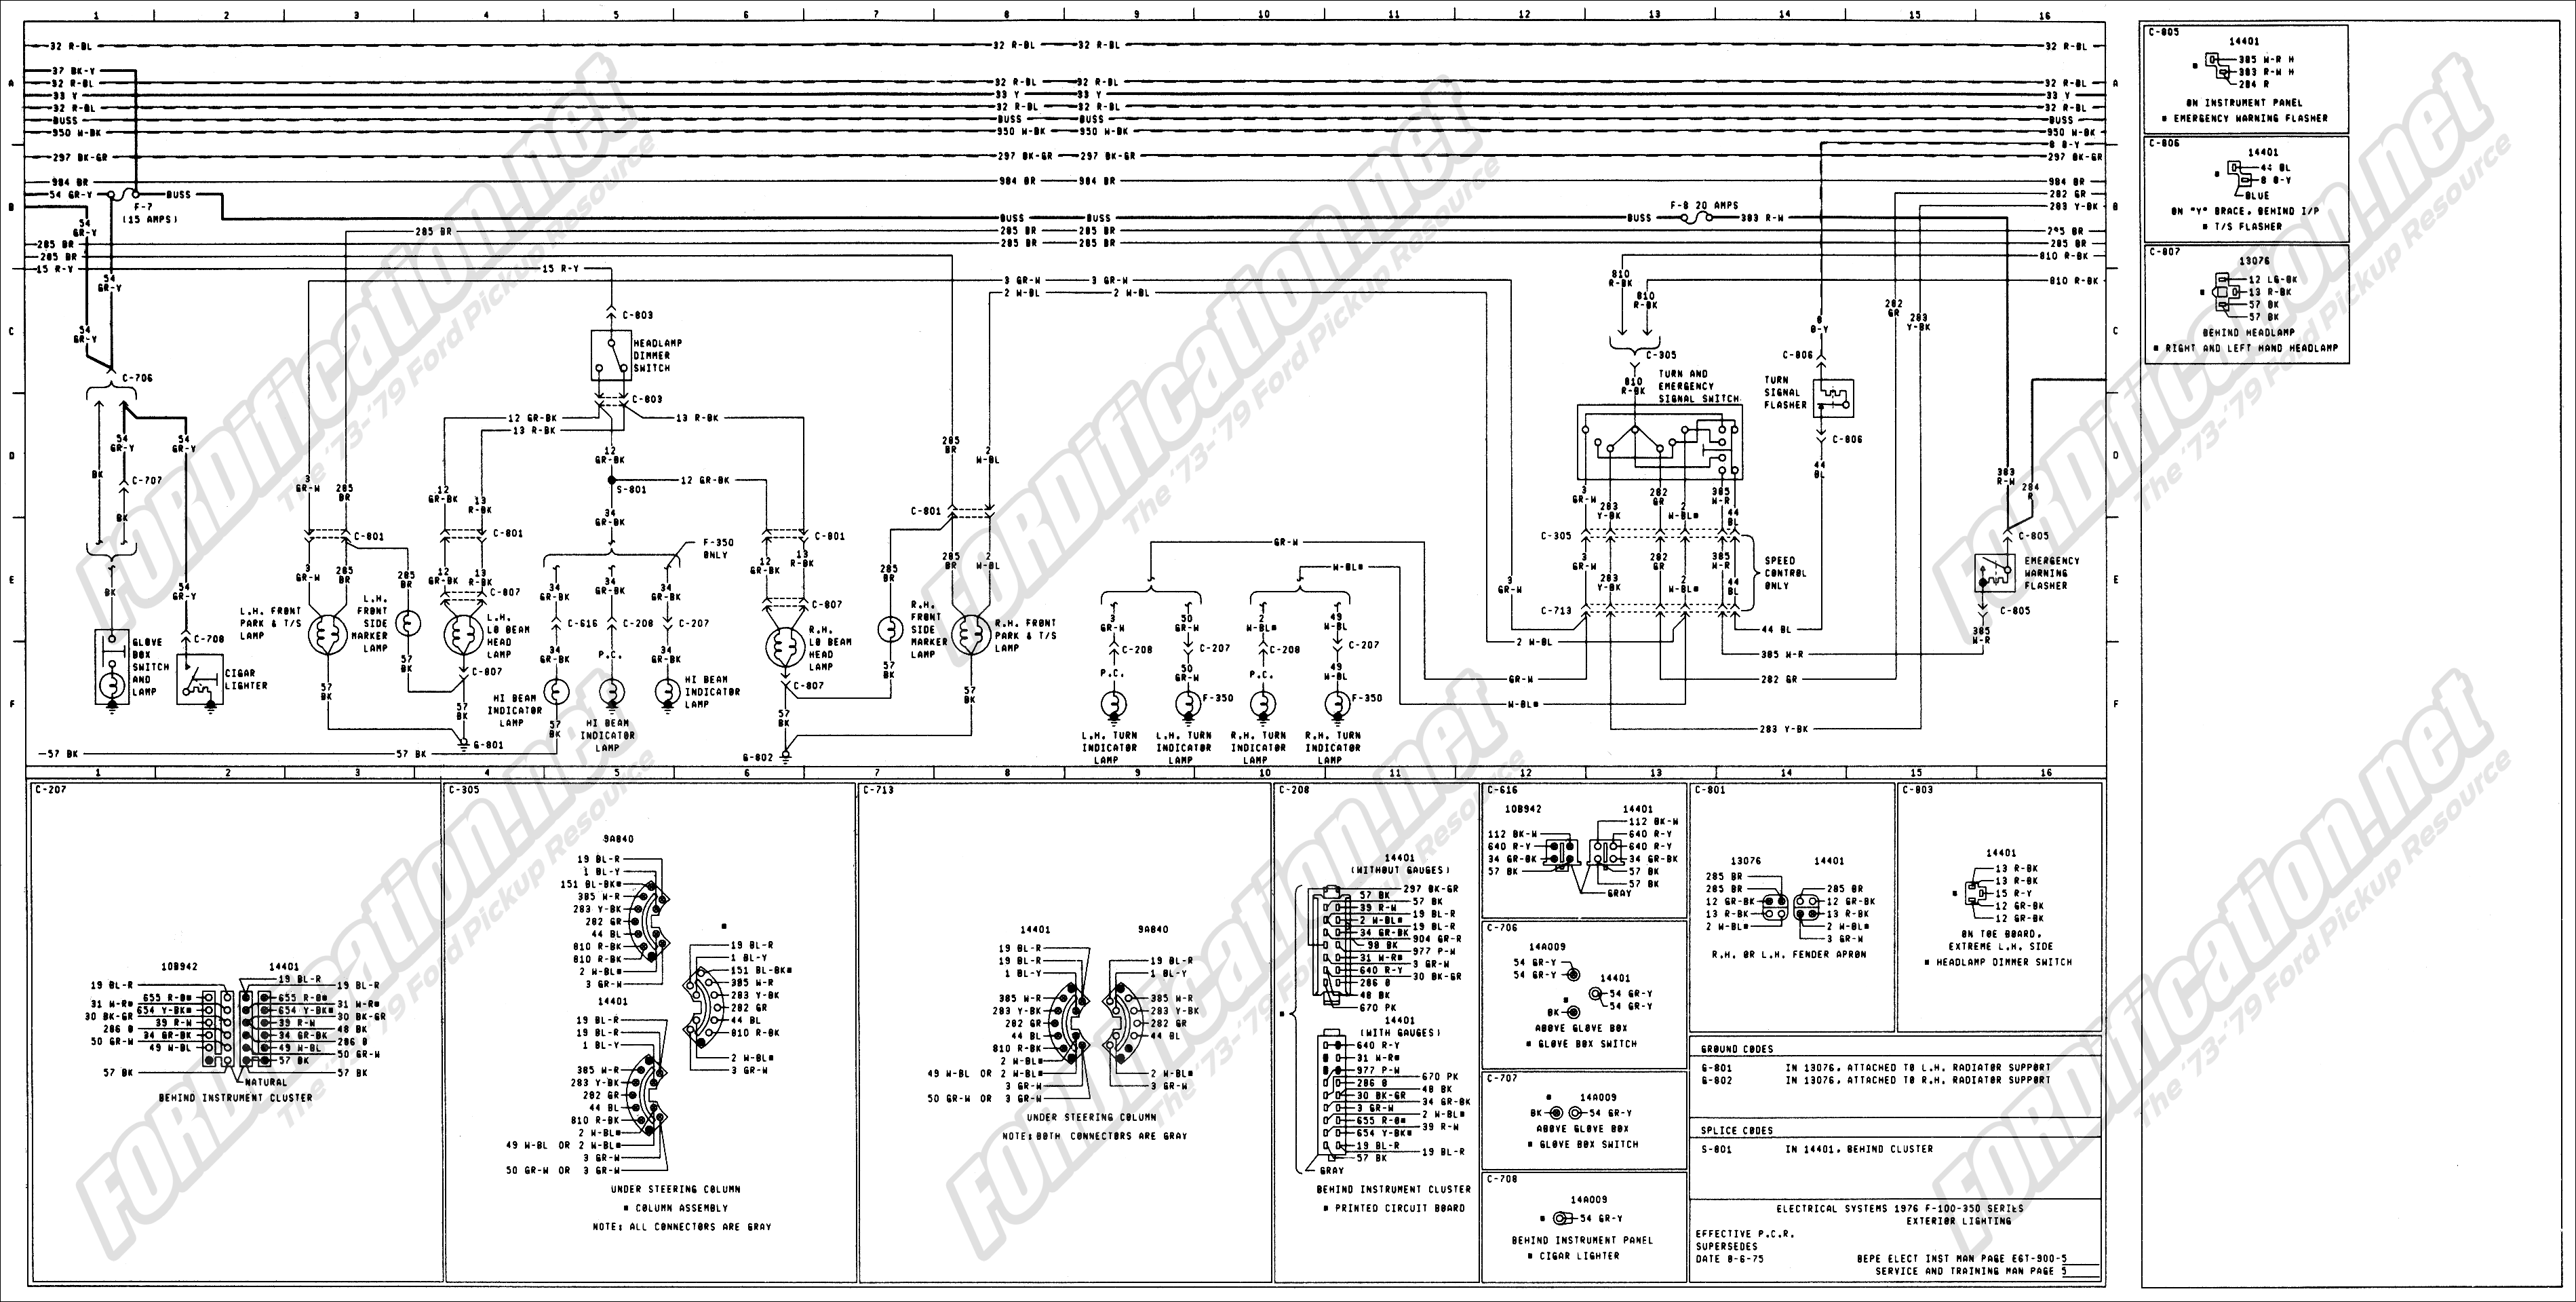 Wiring Harness Diagram 1969 Ford Mustang Wire Data Schema Pdf 1973 1979 Truck Diagrams Schematics Under Hood